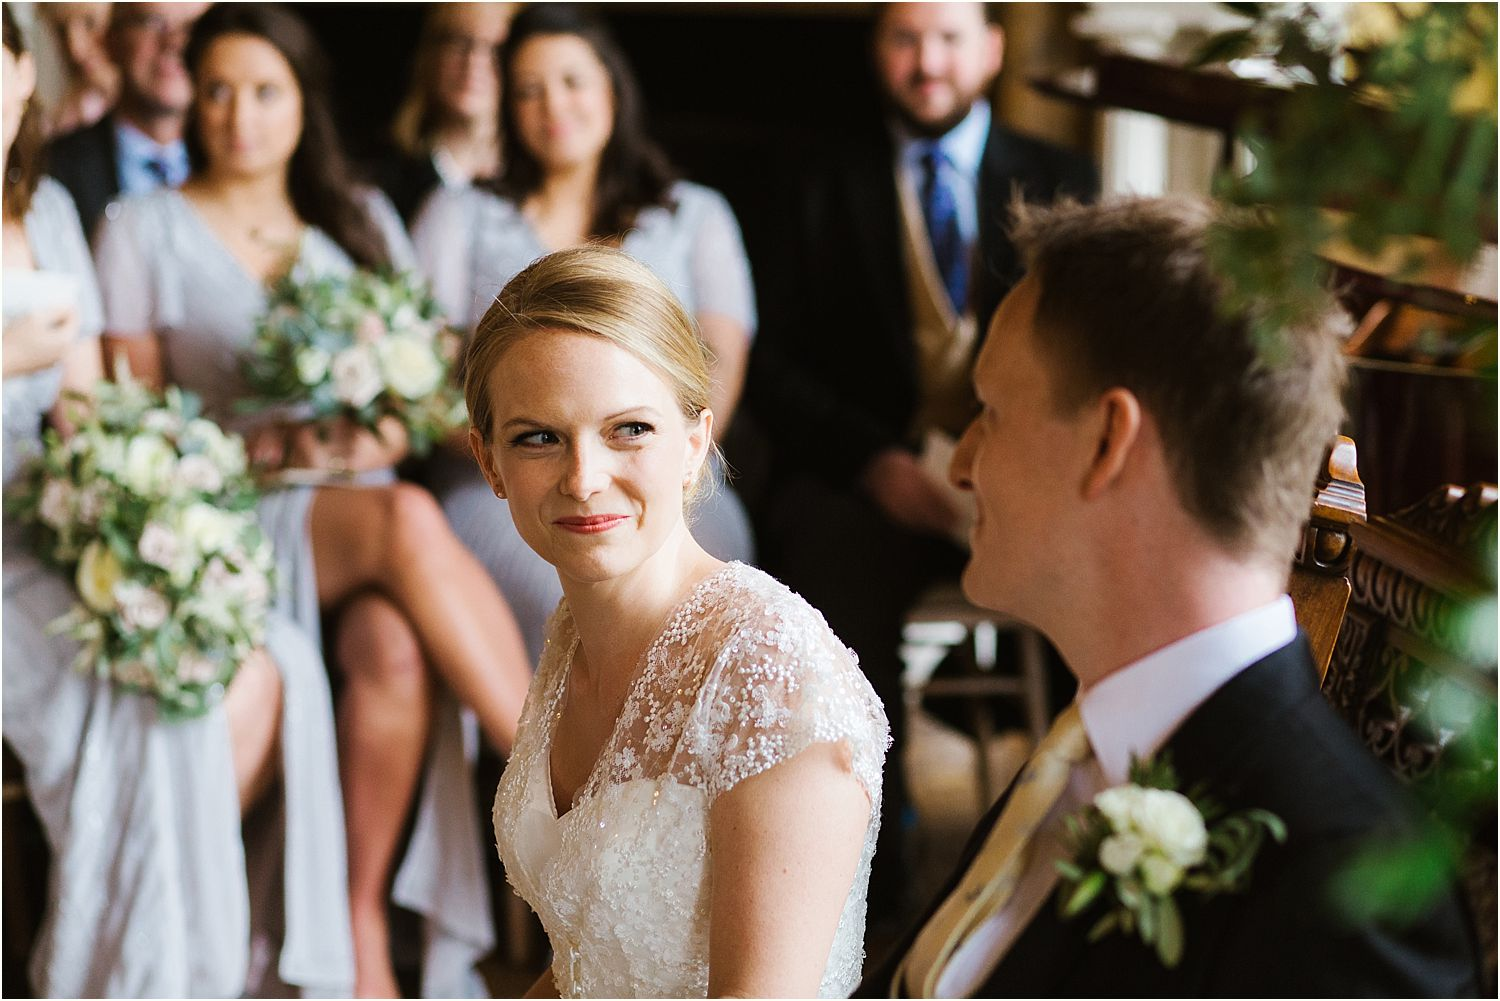 Bride and groom exchange a smile. Wedding dress by Stephanie Allin, hair and make up by Lillie Lindh and Kari Rodnes